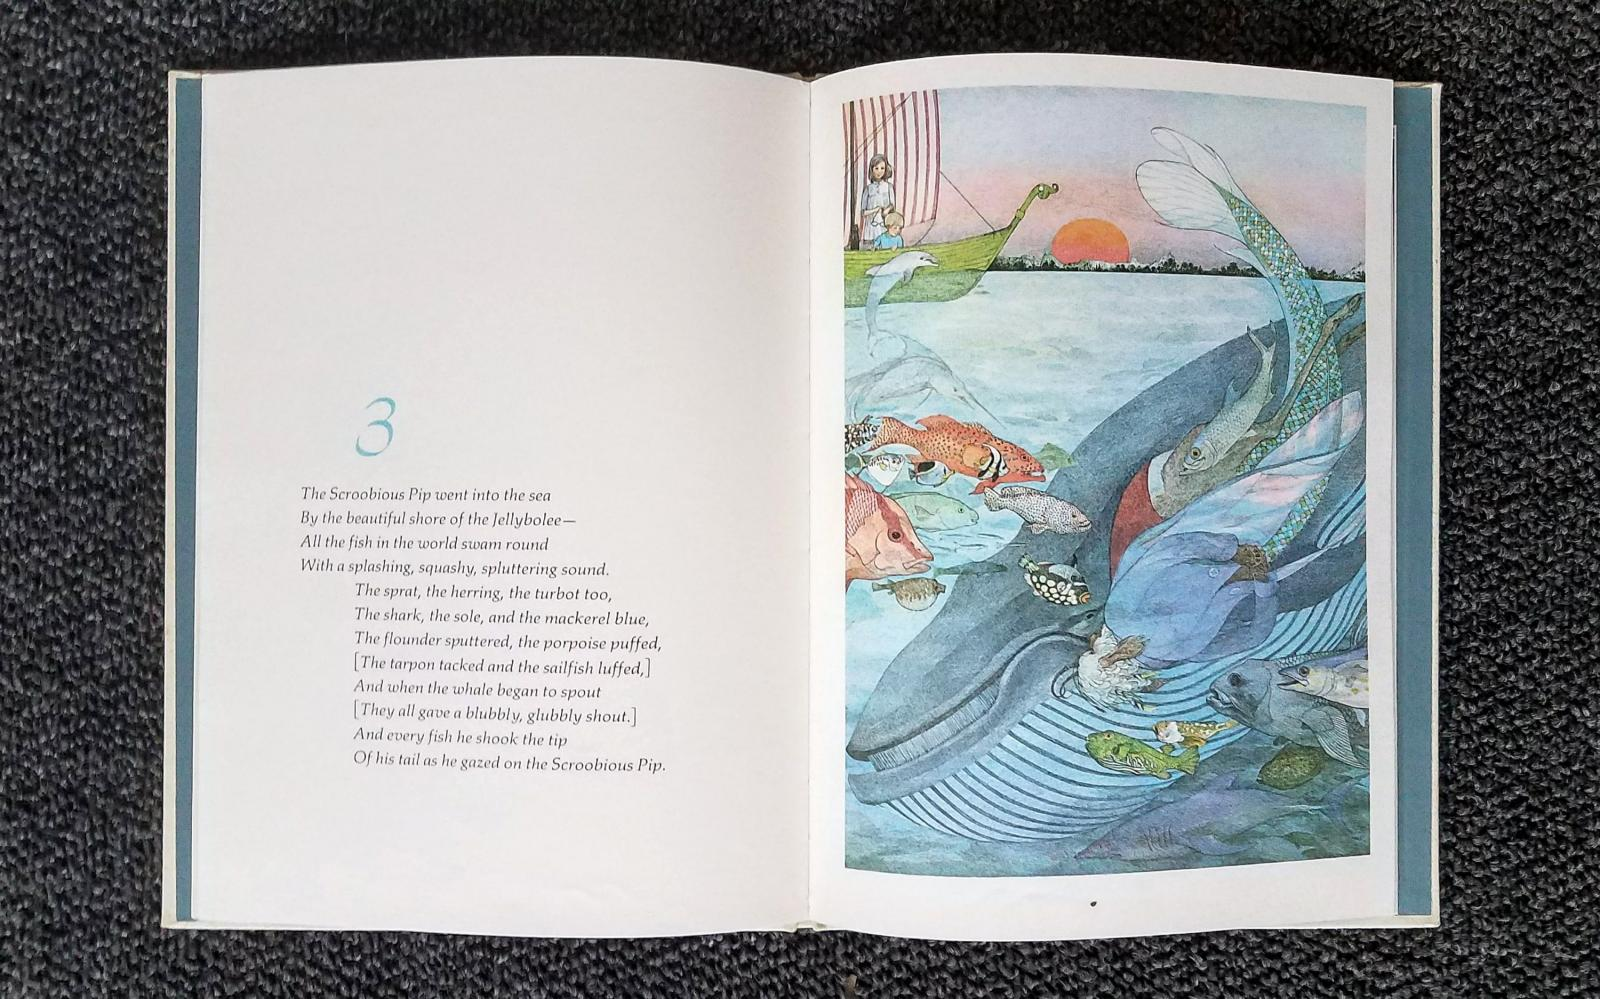 Illustration by Nancy Ekholm Burkert for 'The Scroobius Pip' by Edward Lear